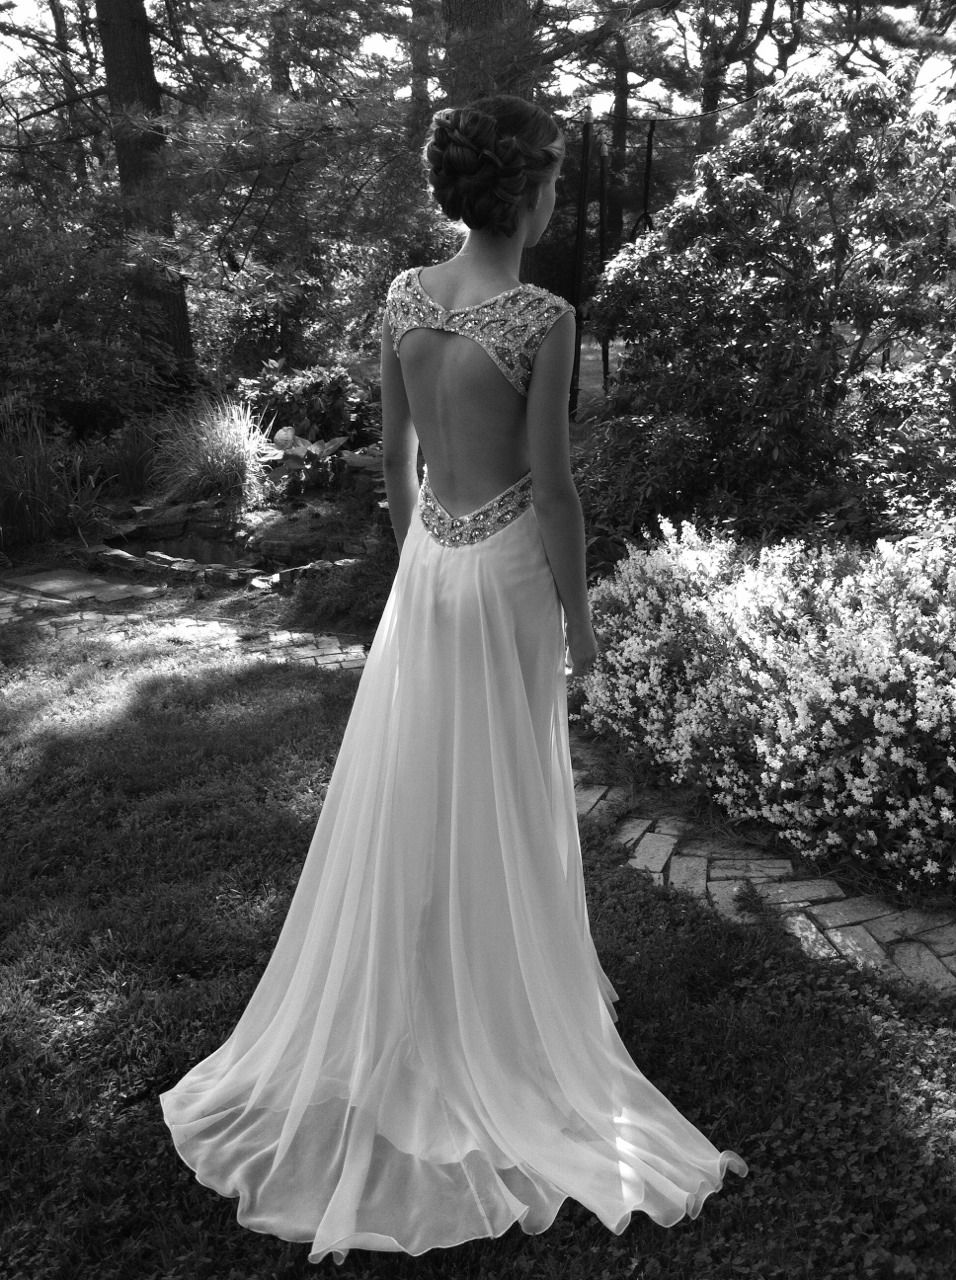 Pin by louisa ladub on wishful thinking wedding pinterest gatsby